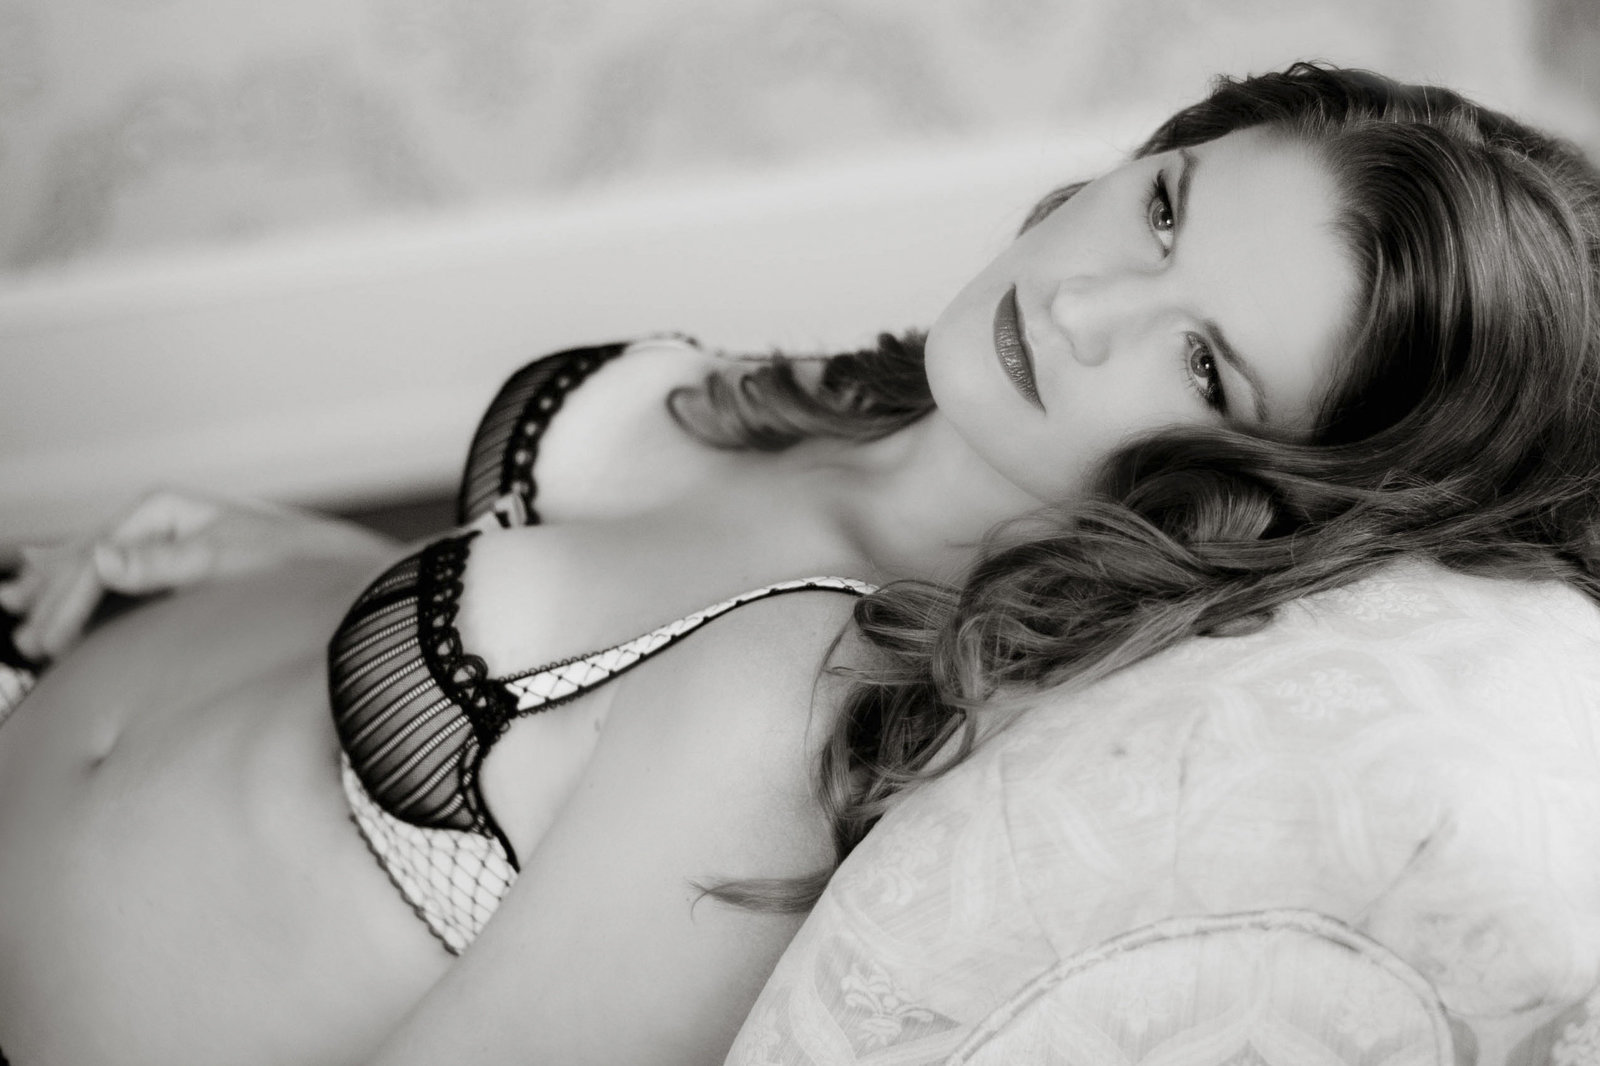 minneapolis-boudoir-photography-164